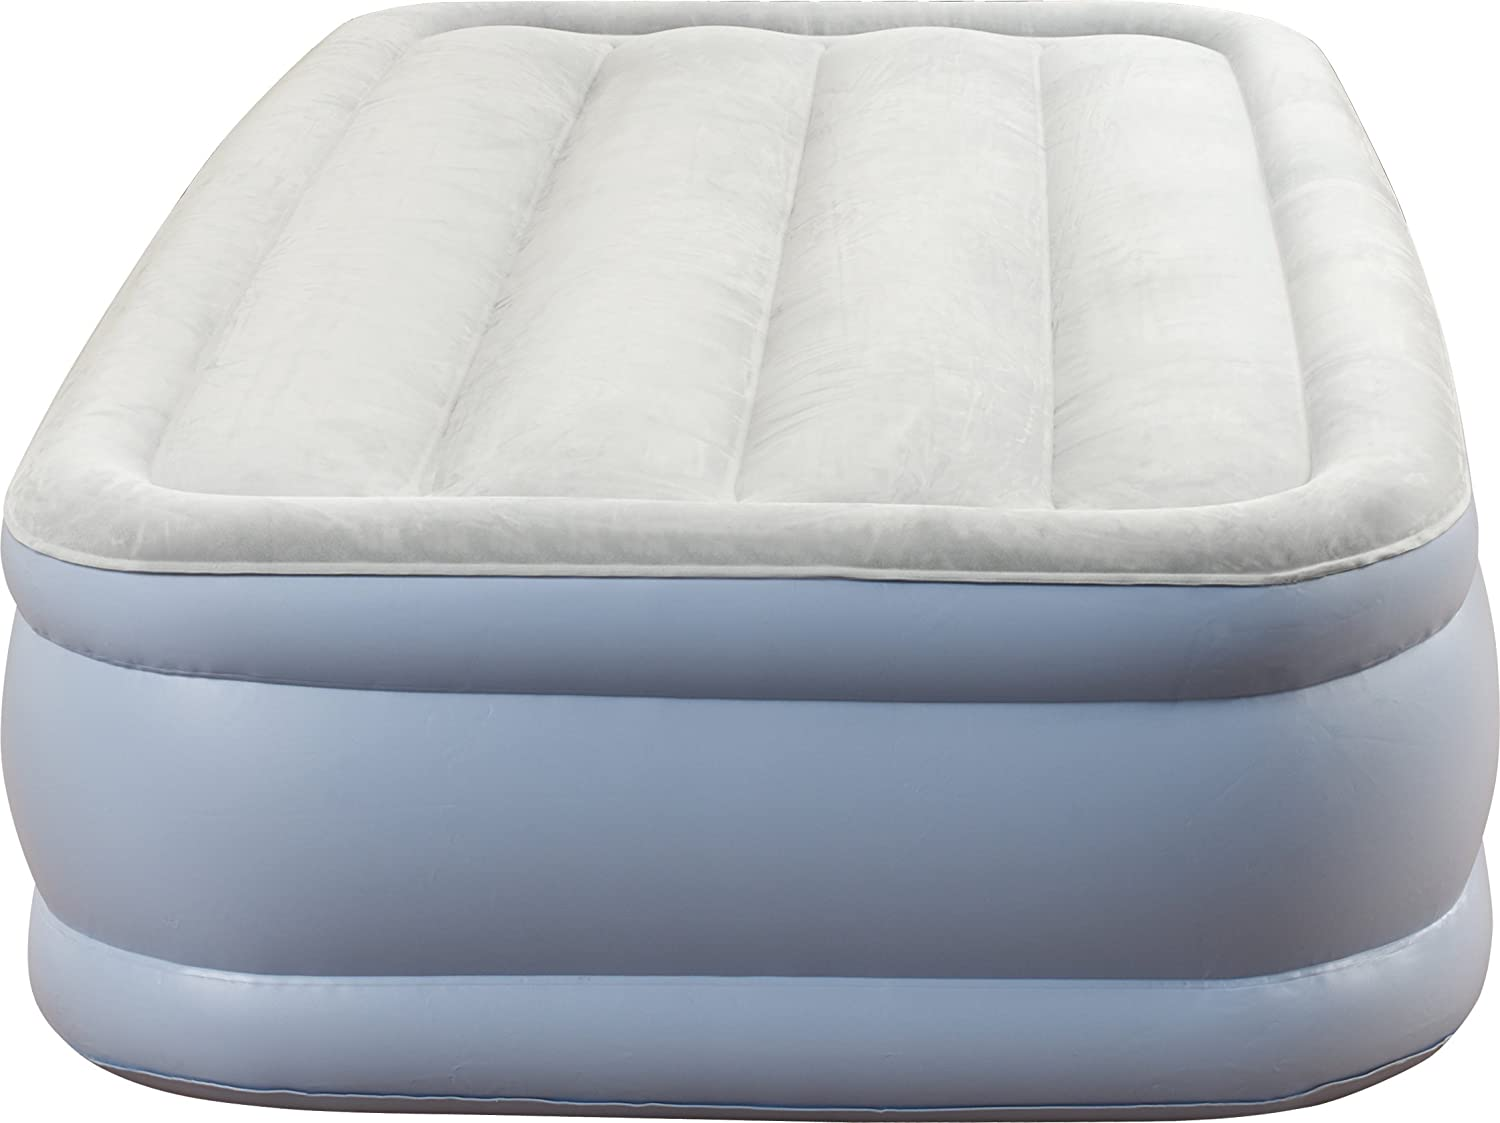 Simmons Beautyrest Hi-Loft Inflatable Air Mattress  Raised-Profile Air Bed with External Pump, Twin